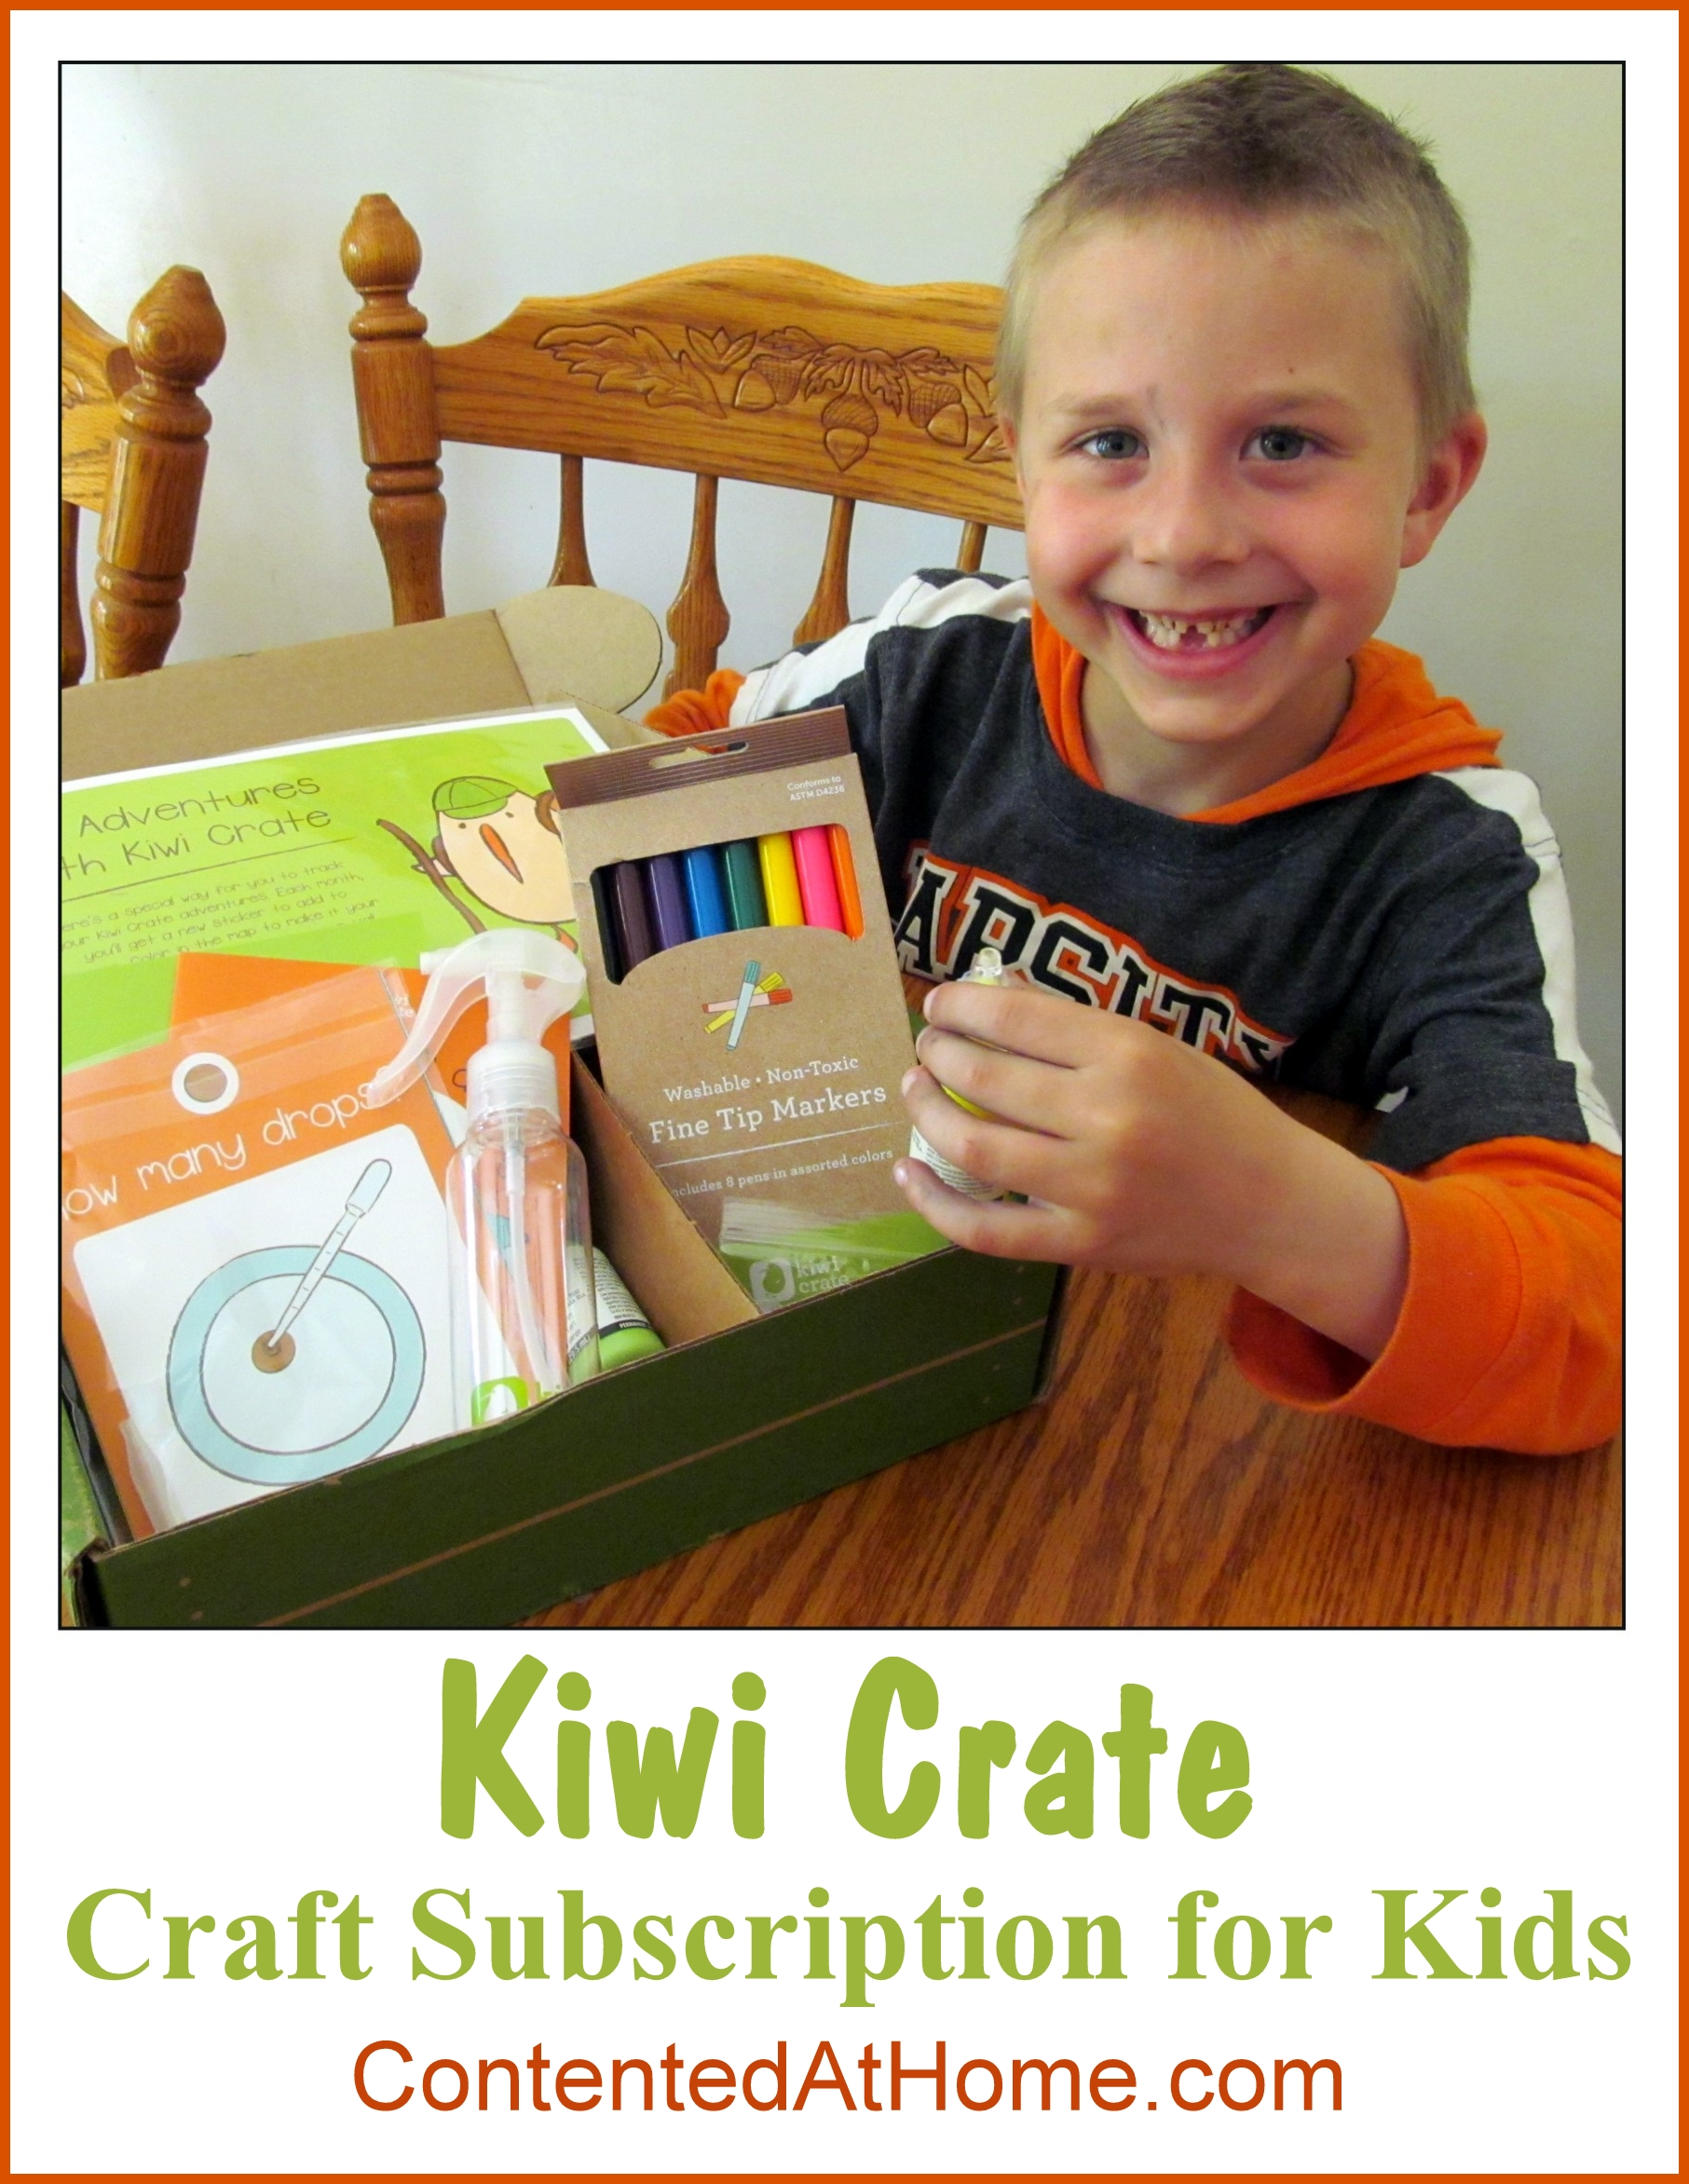 Kiwi Crate: Craft Subscription for Kids